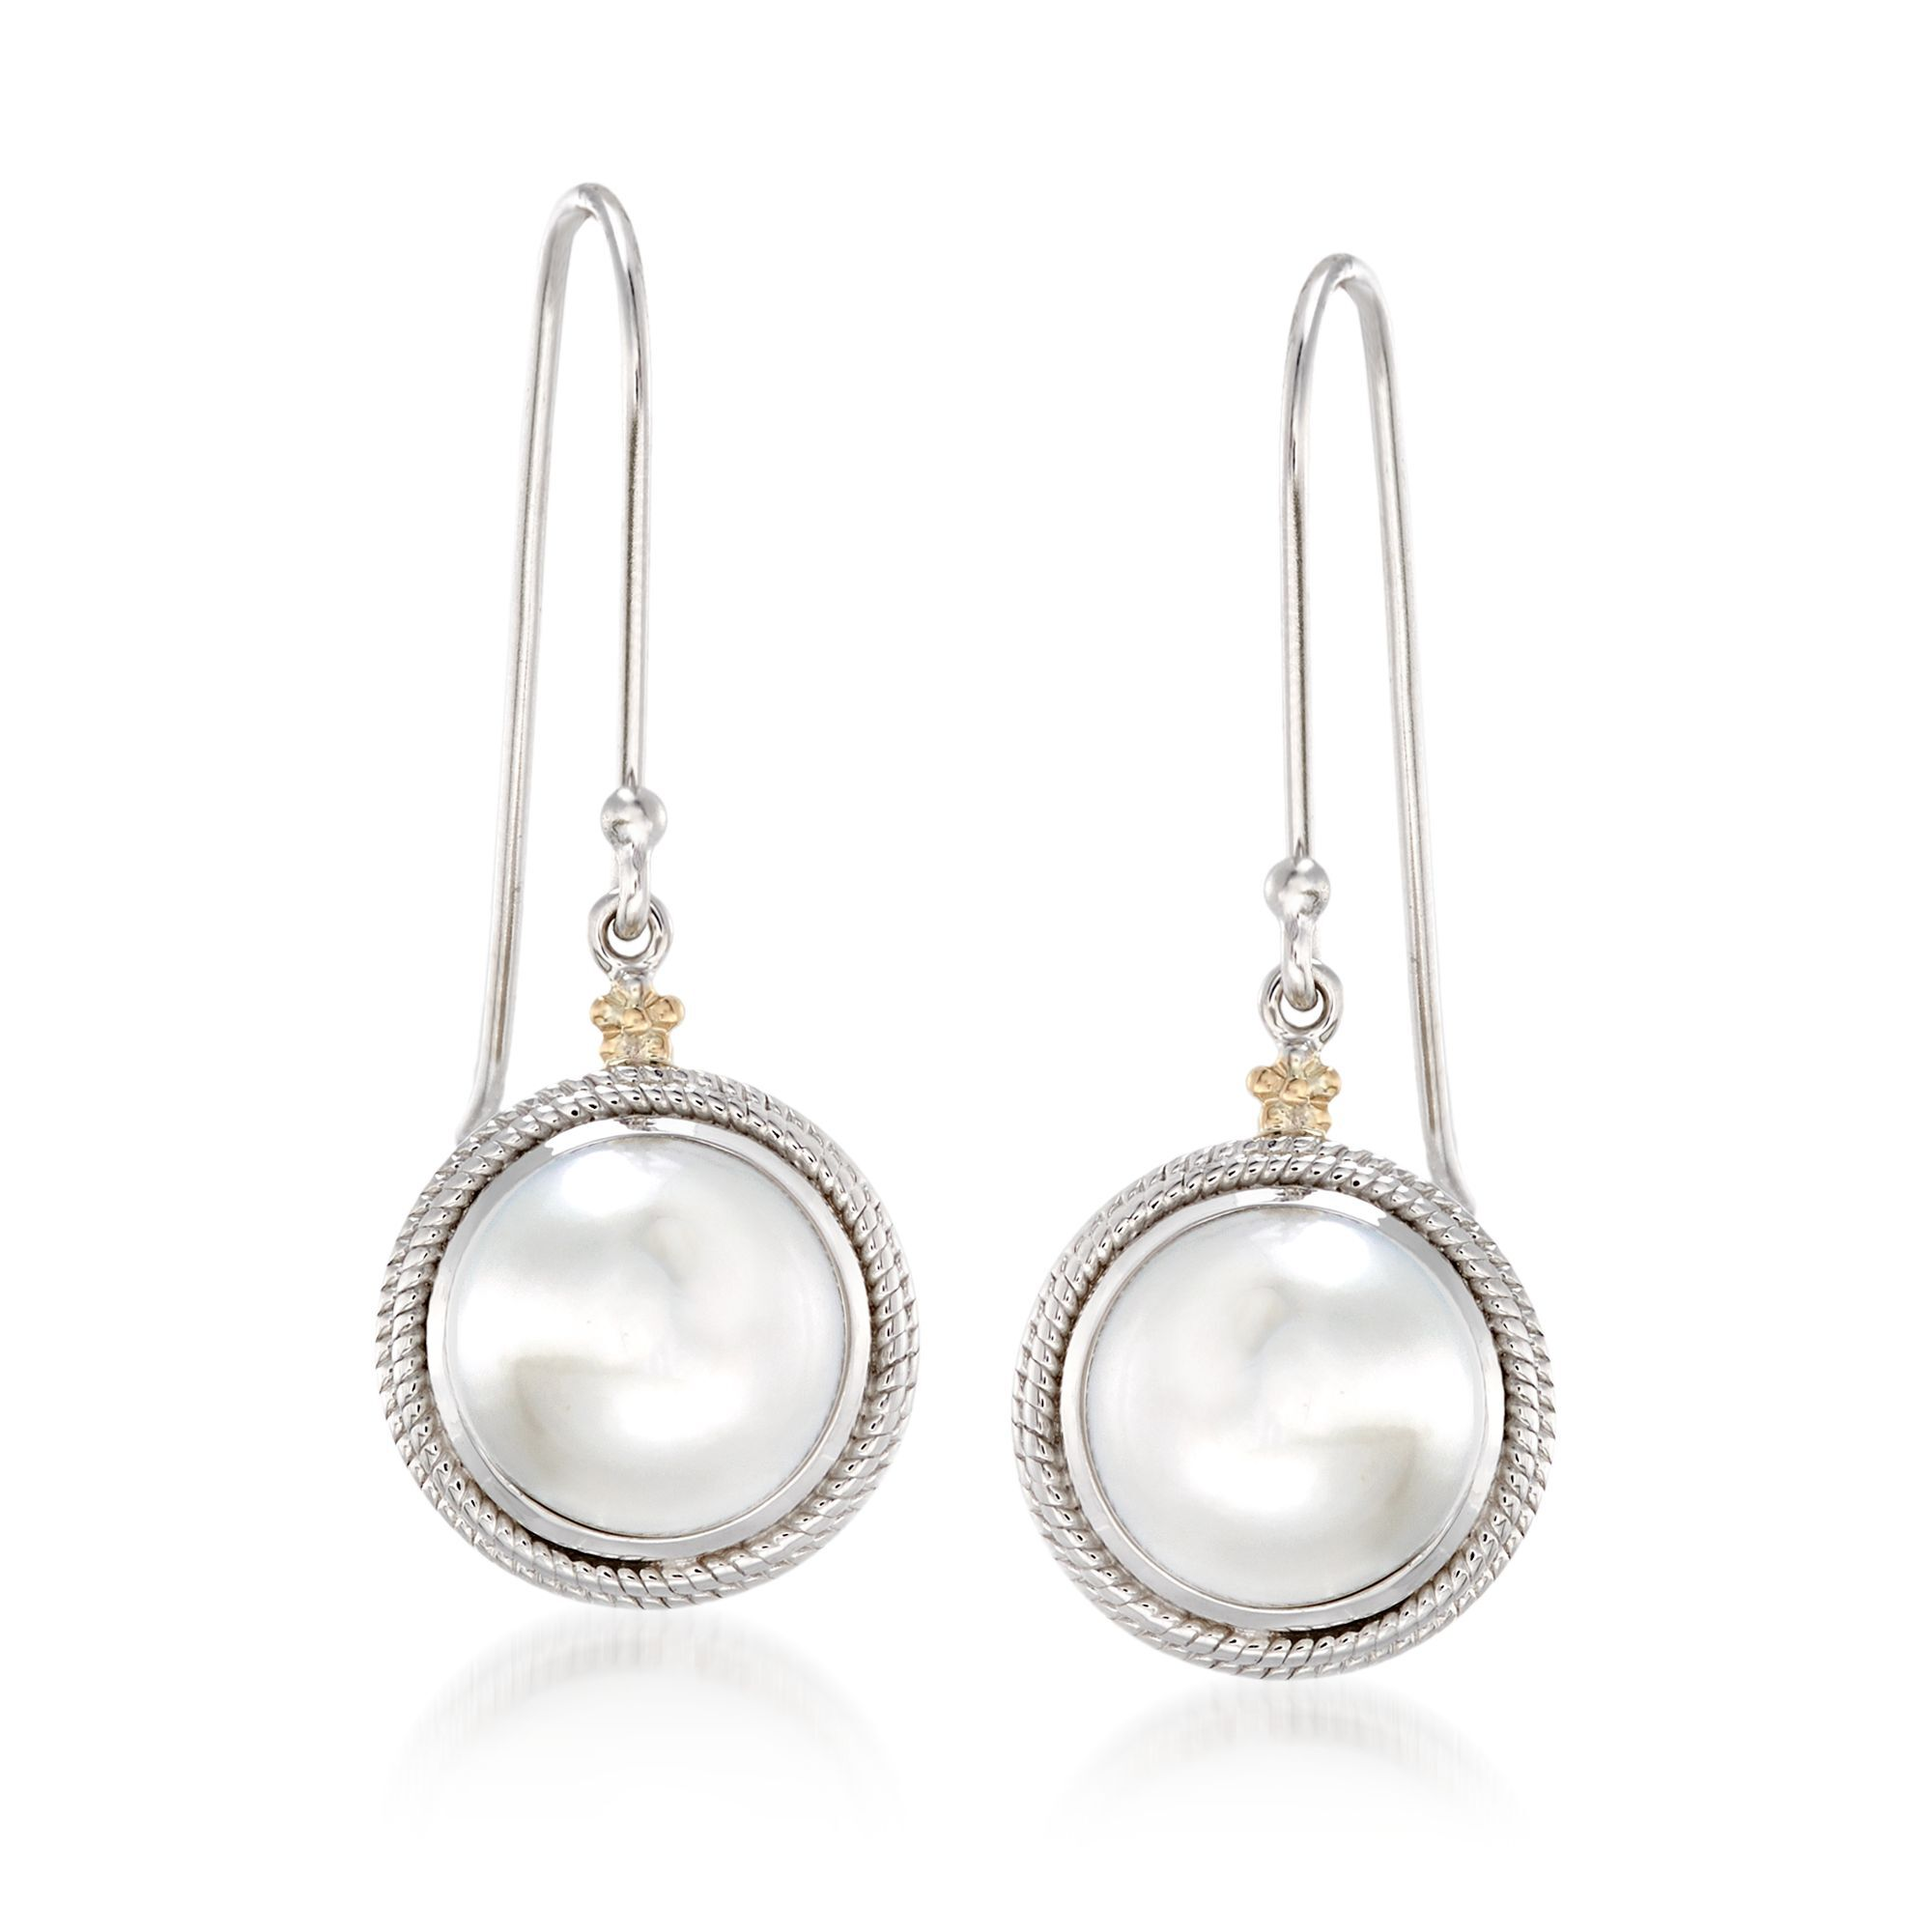 10mm Cultured Pearl Drop Earrings With 14kt Yellow Gold